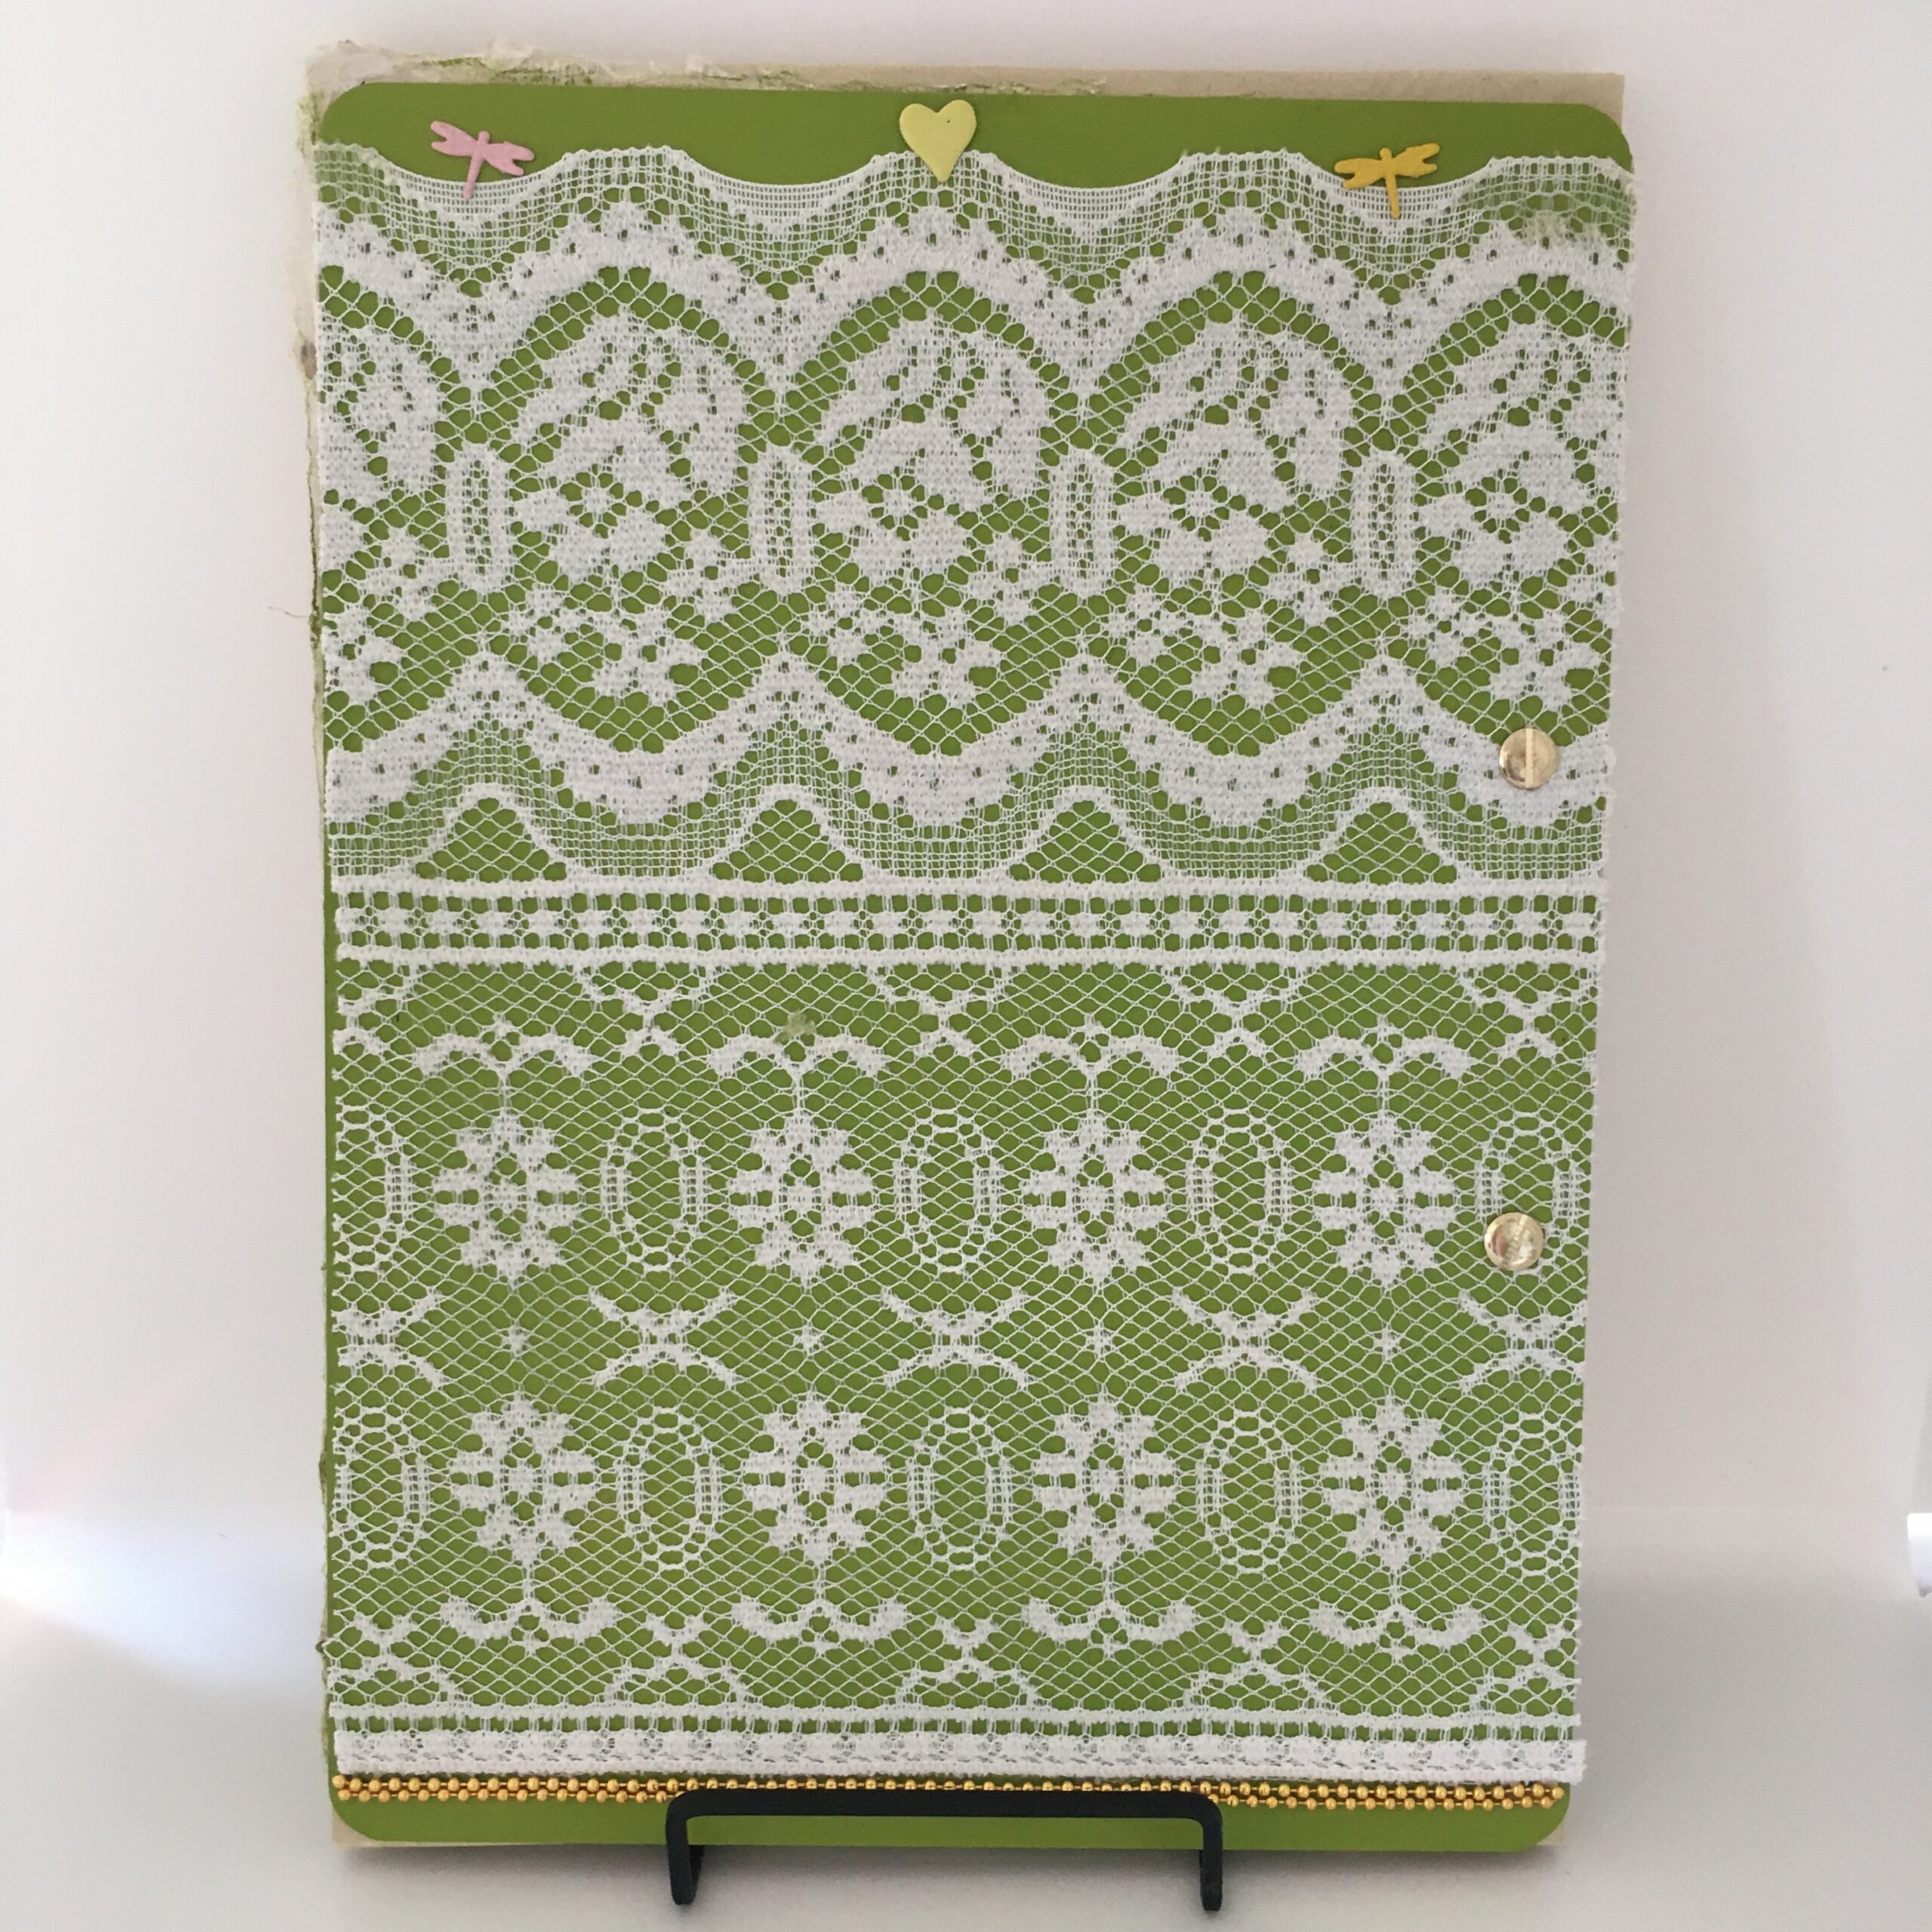 Back view of Spring Flings art journal, featuring lace fabric, gold beading and metal embellishments.